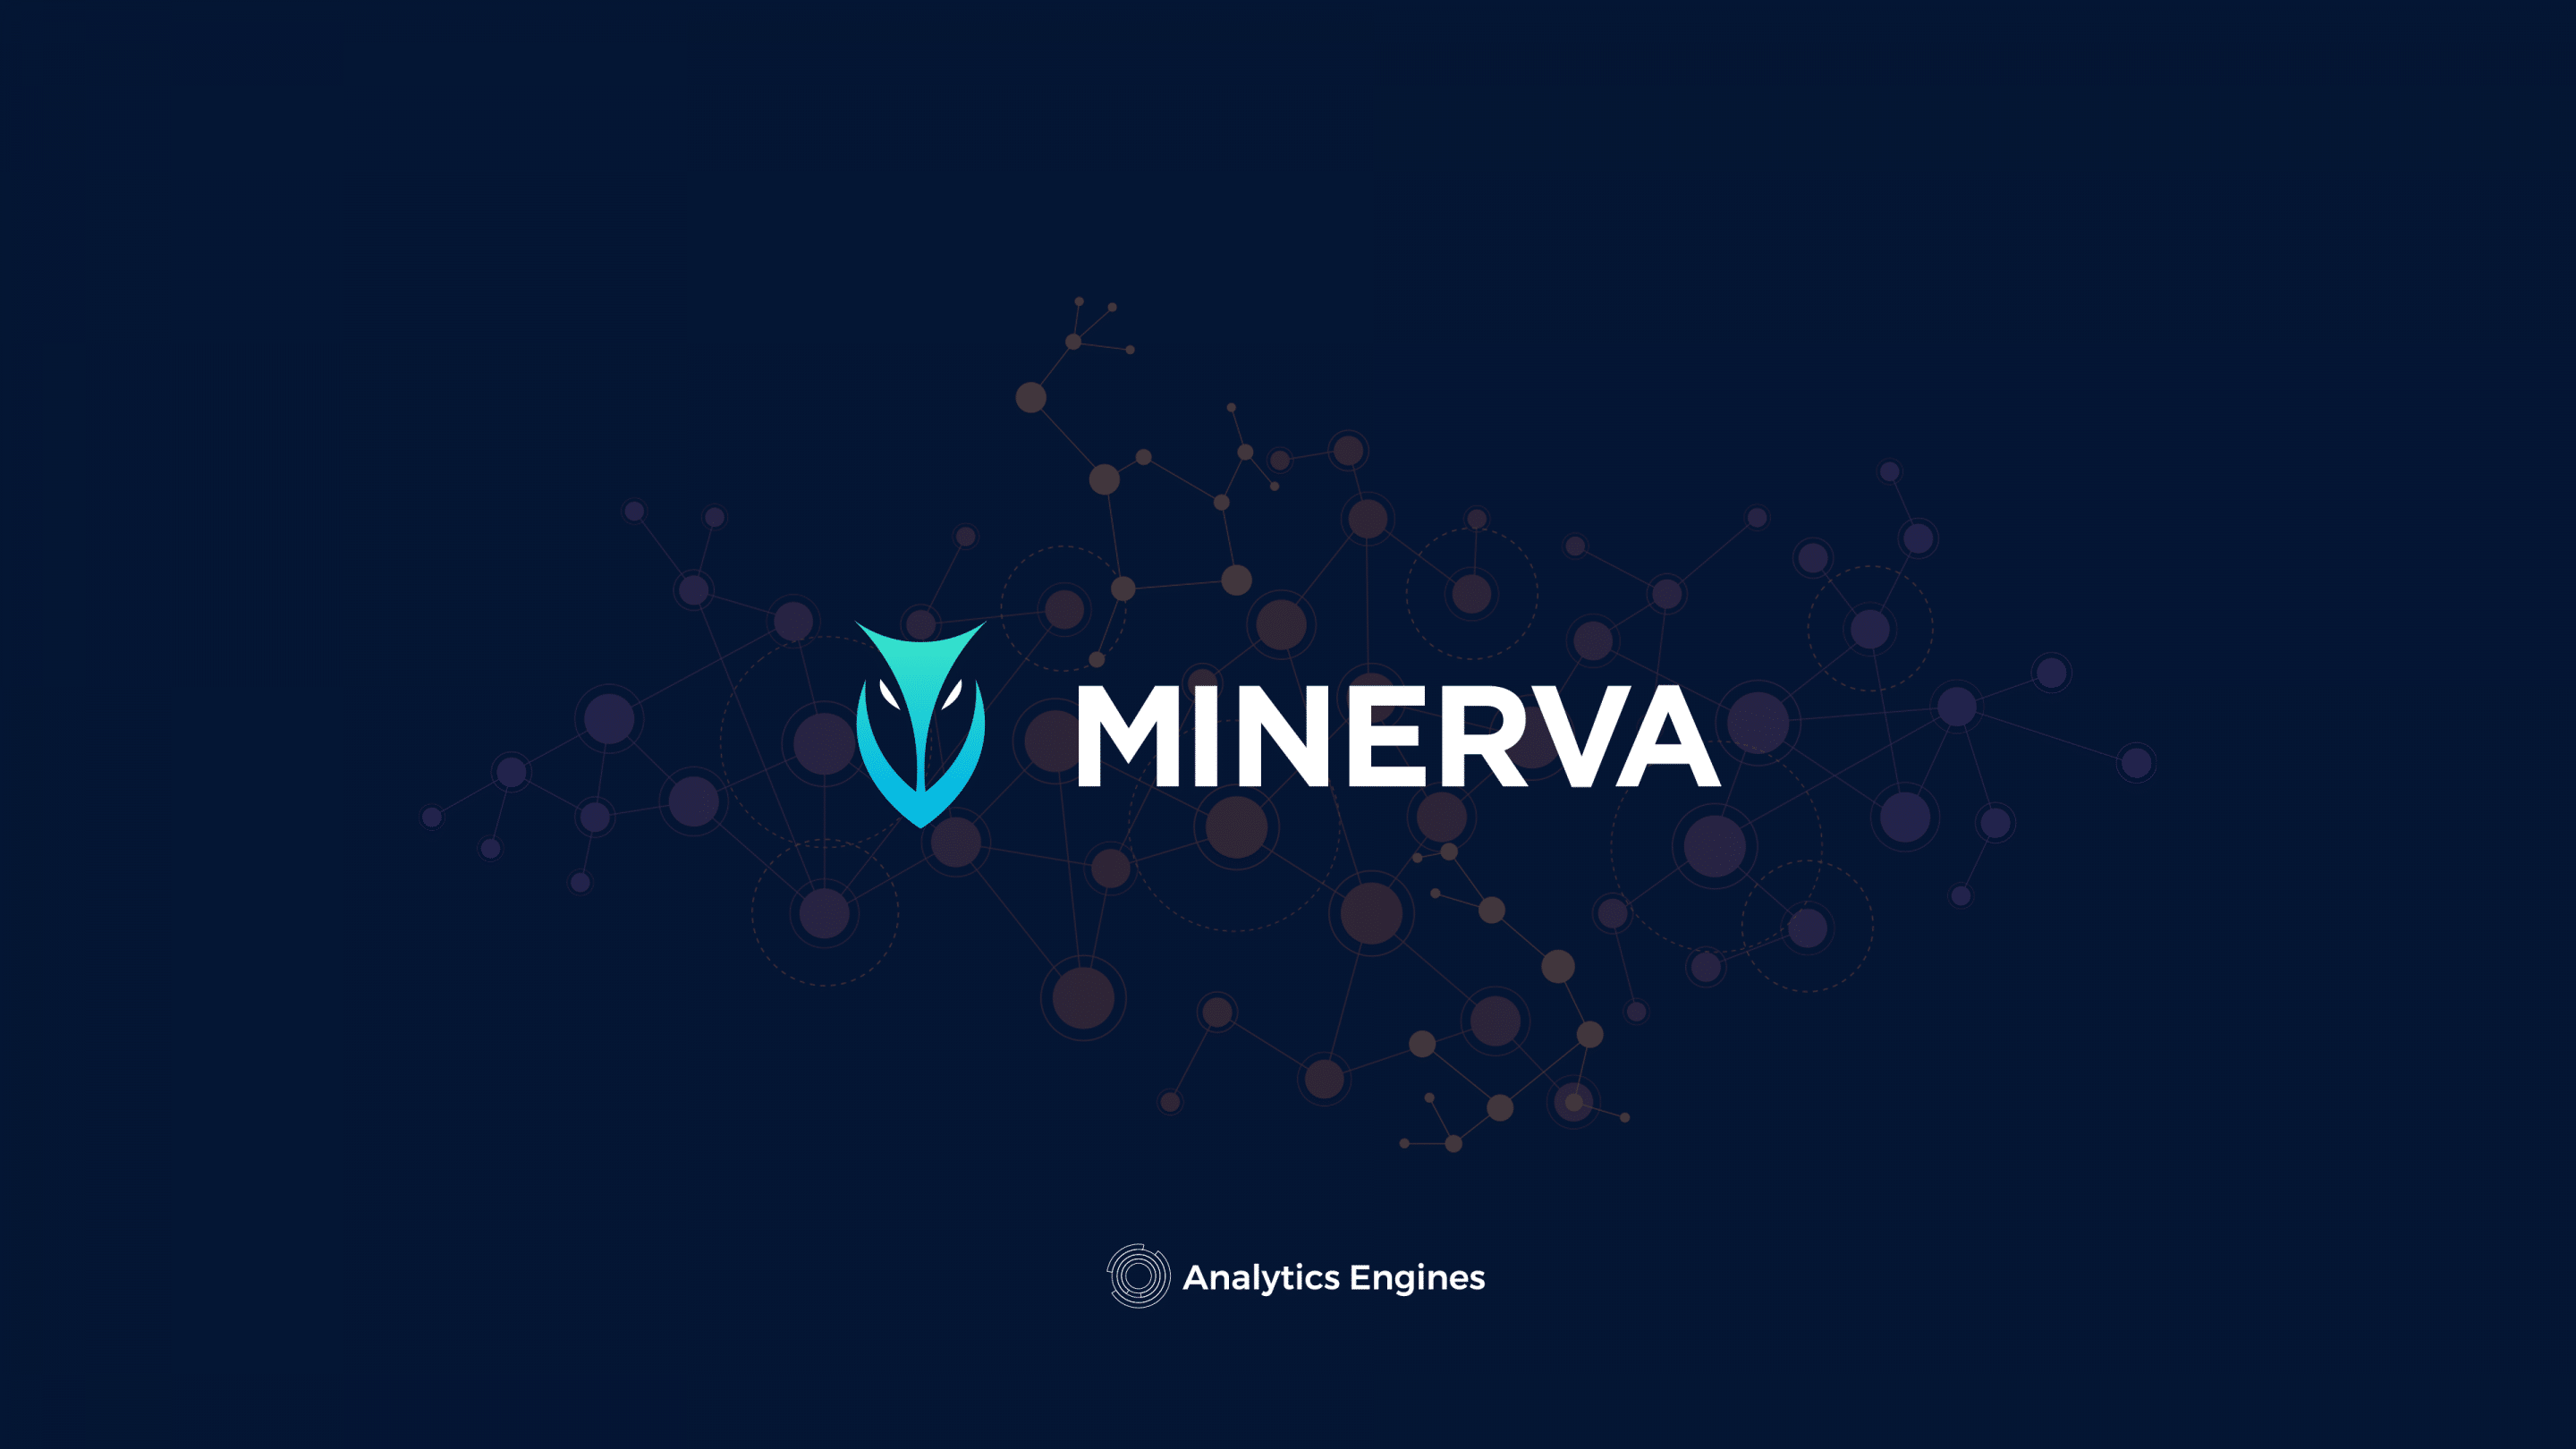 MINERVA Corporate Search & Discovery Platform